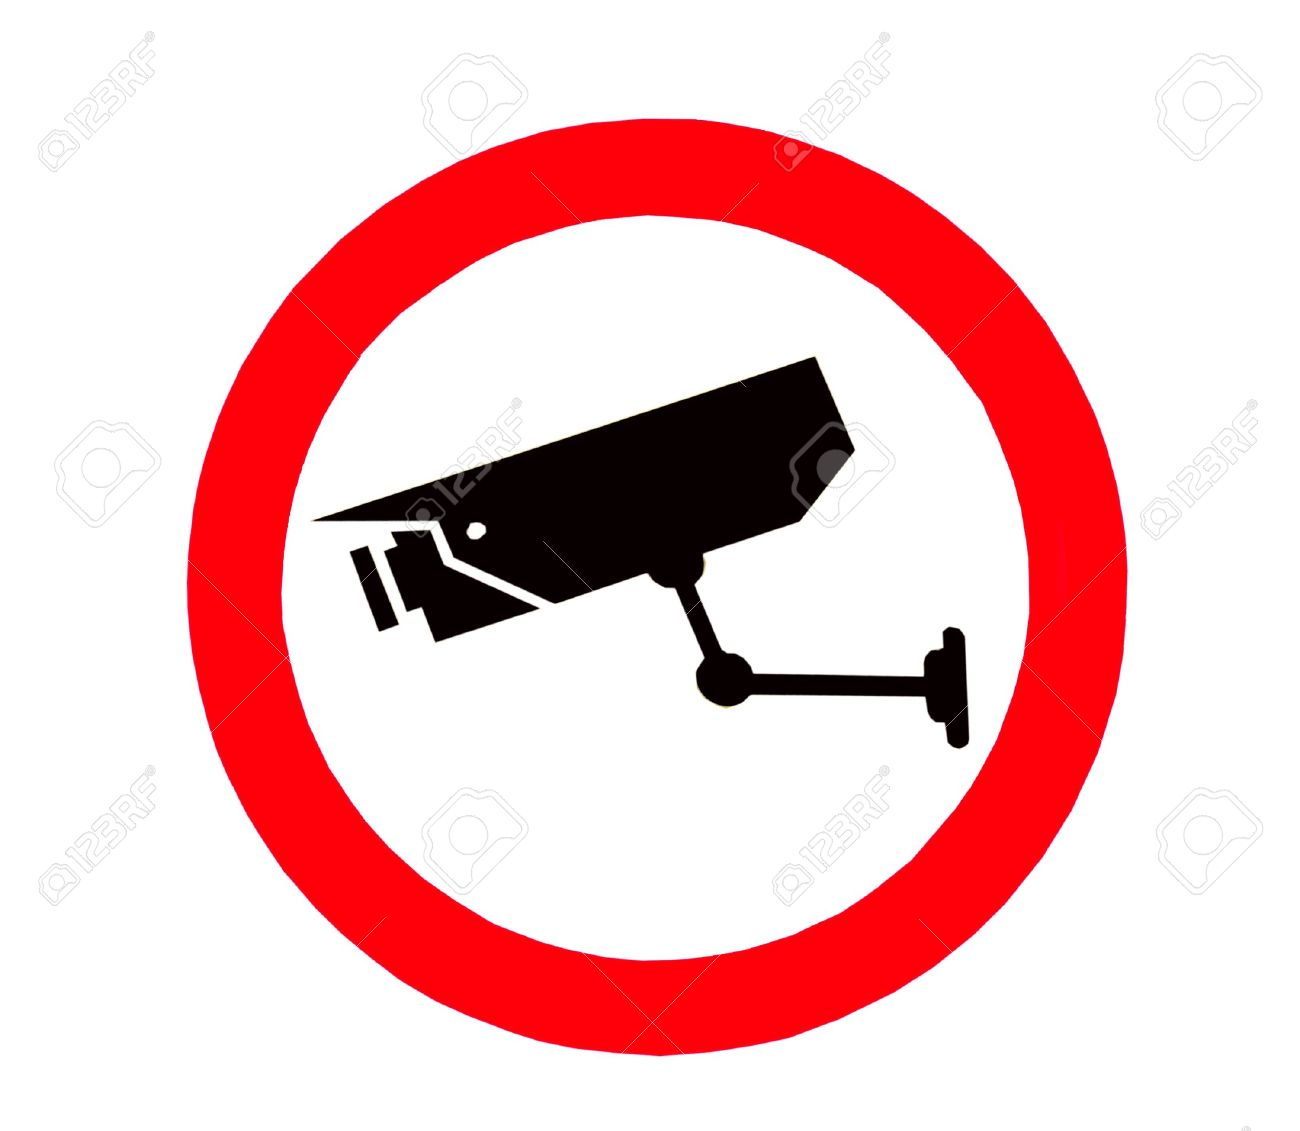 The Sign of Video surveillance sign isolated on white background Stock Photo - 12745370